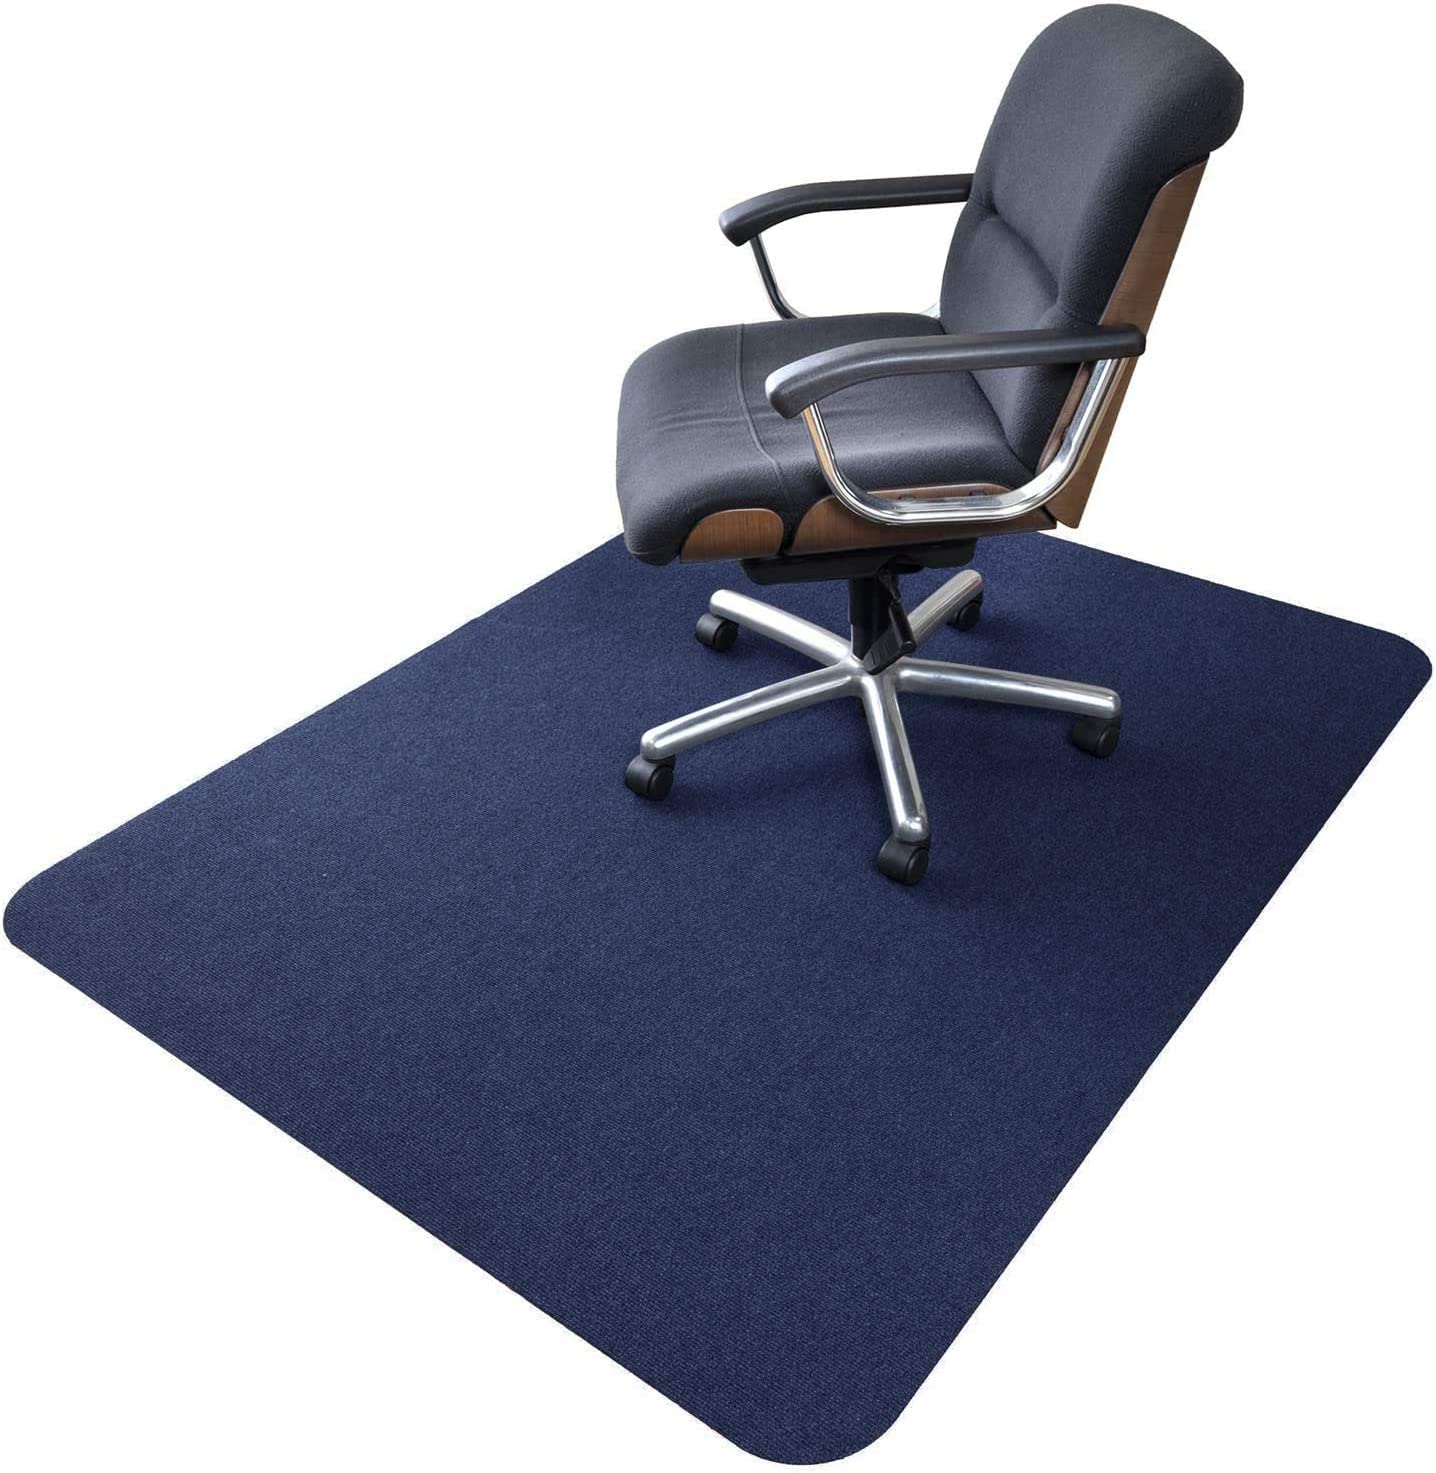 Amazon Com Office Chair Mat Upgraded Version Hard Floor Mat For Desk 1 6 Thick 63 X51 Low Pile Office Desk Chair Mat For Hardwood Floors Multi Purpose Protector Chair Carpet For Home Dark Blue